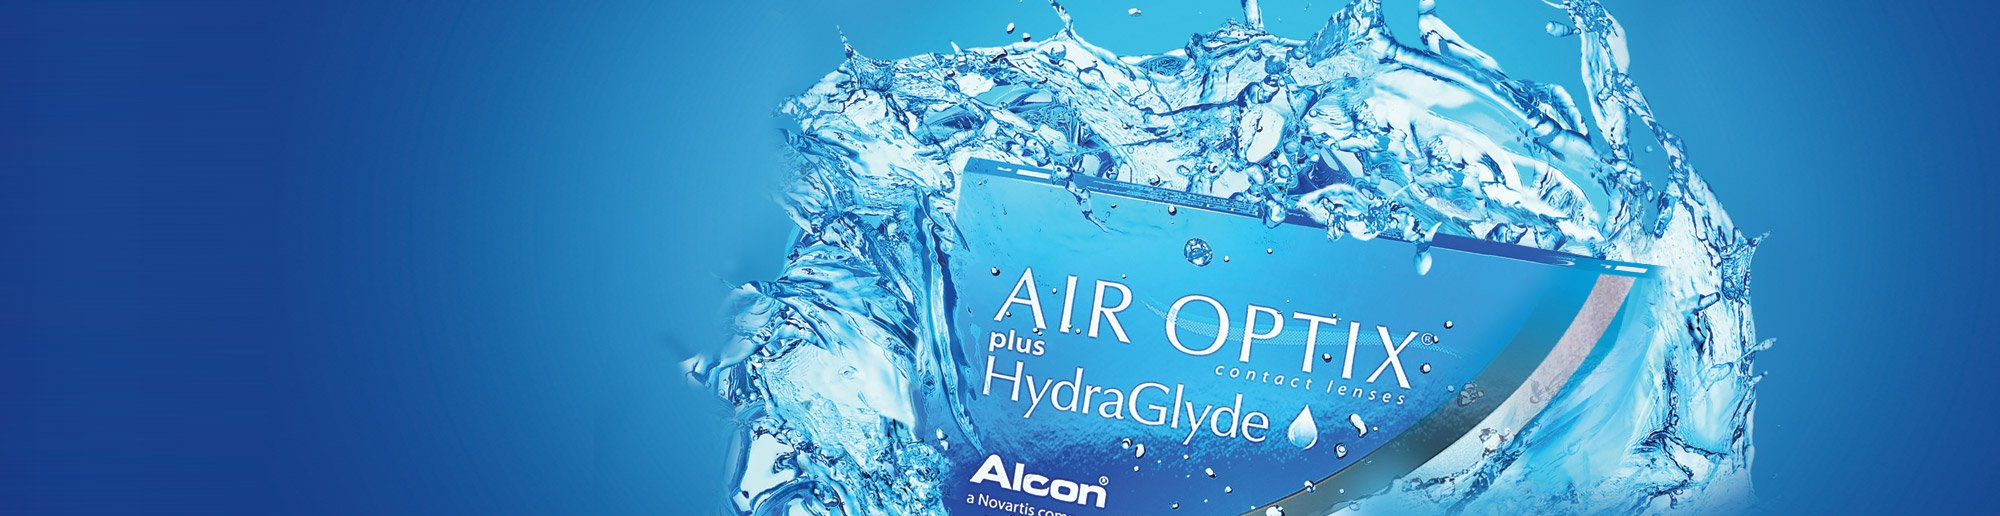 Ad for air optix plus hydraglyde in Johnstown, PA